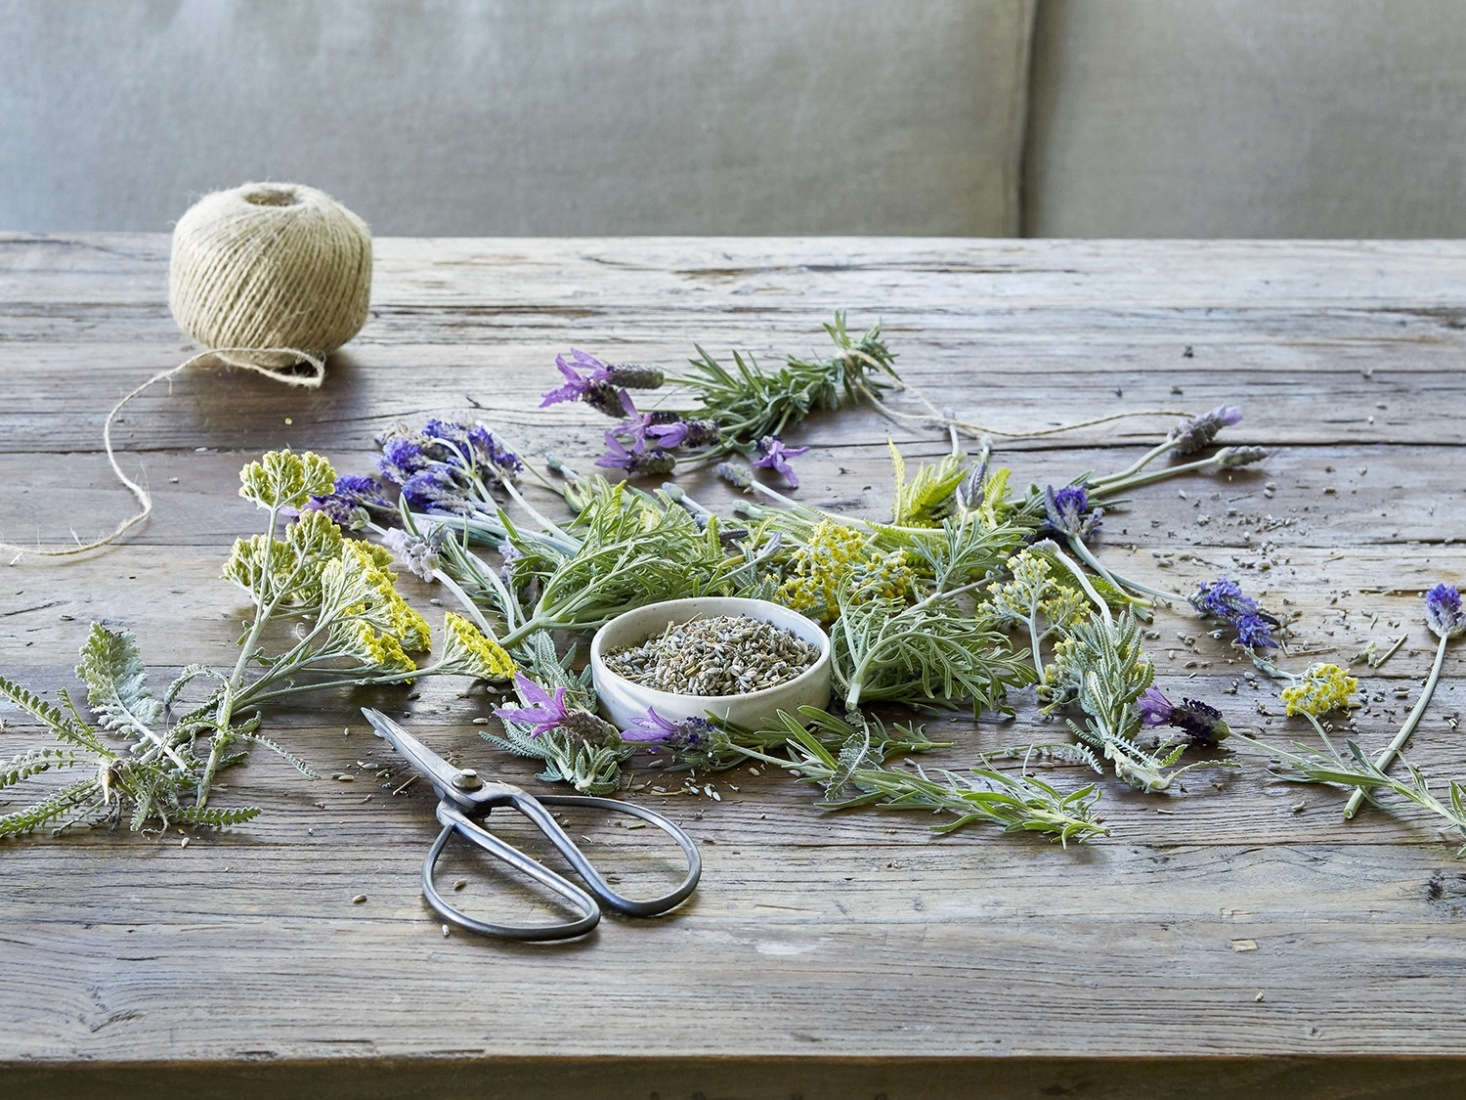 Loves me, loves me not, (clearly) loves me. Read more about flowering lavender in Everything You Need to Know About Lavender (Plus 5 Kinds to Grow).